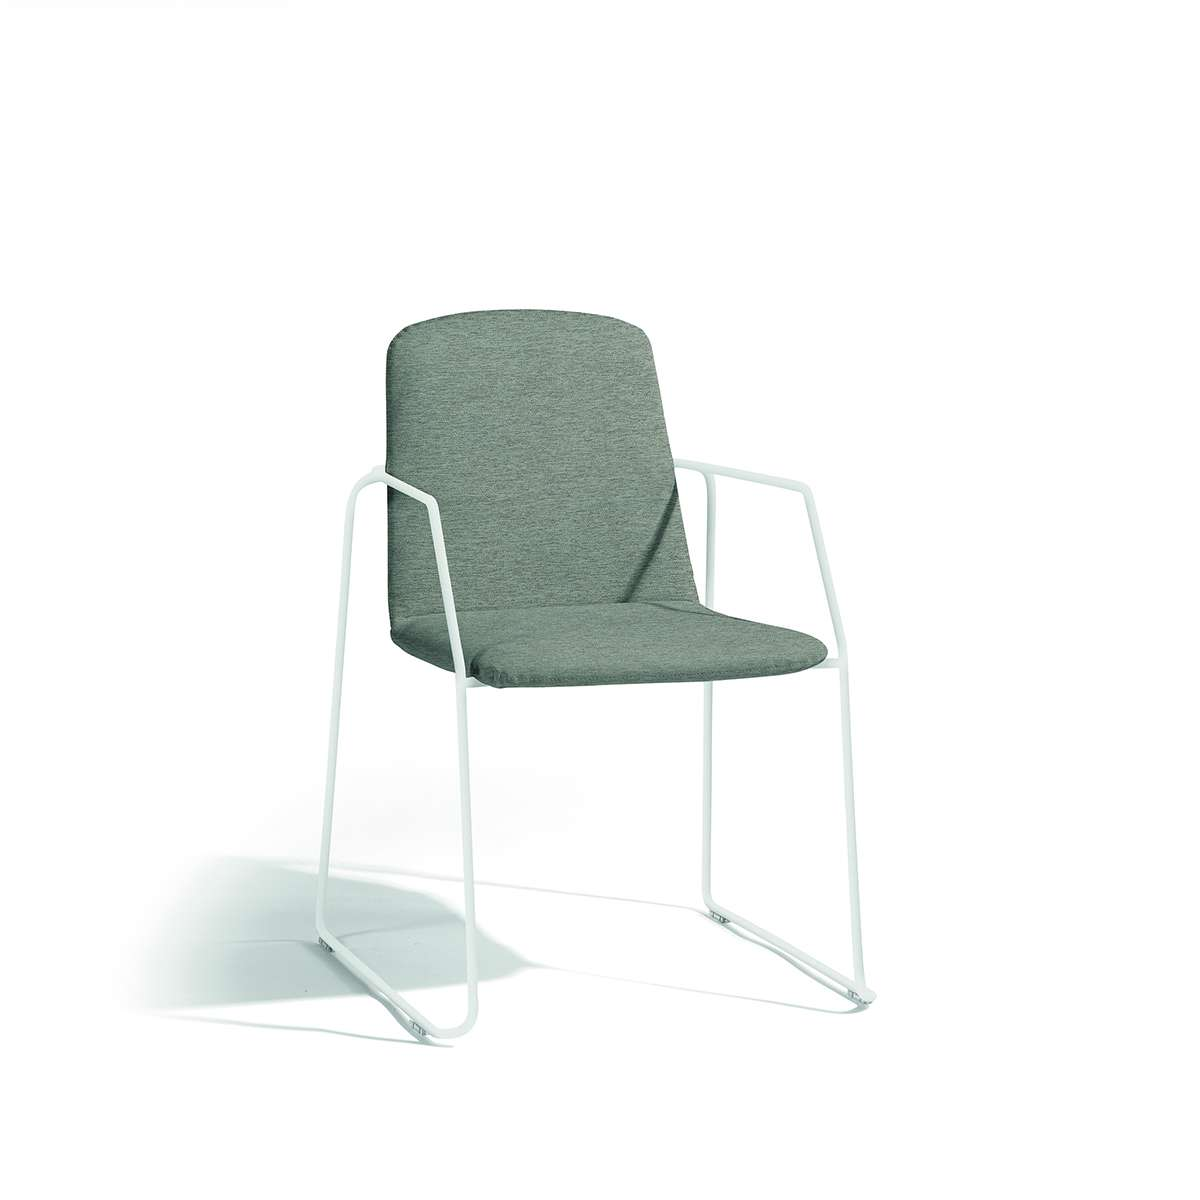 Loop - Dining Chair with arms